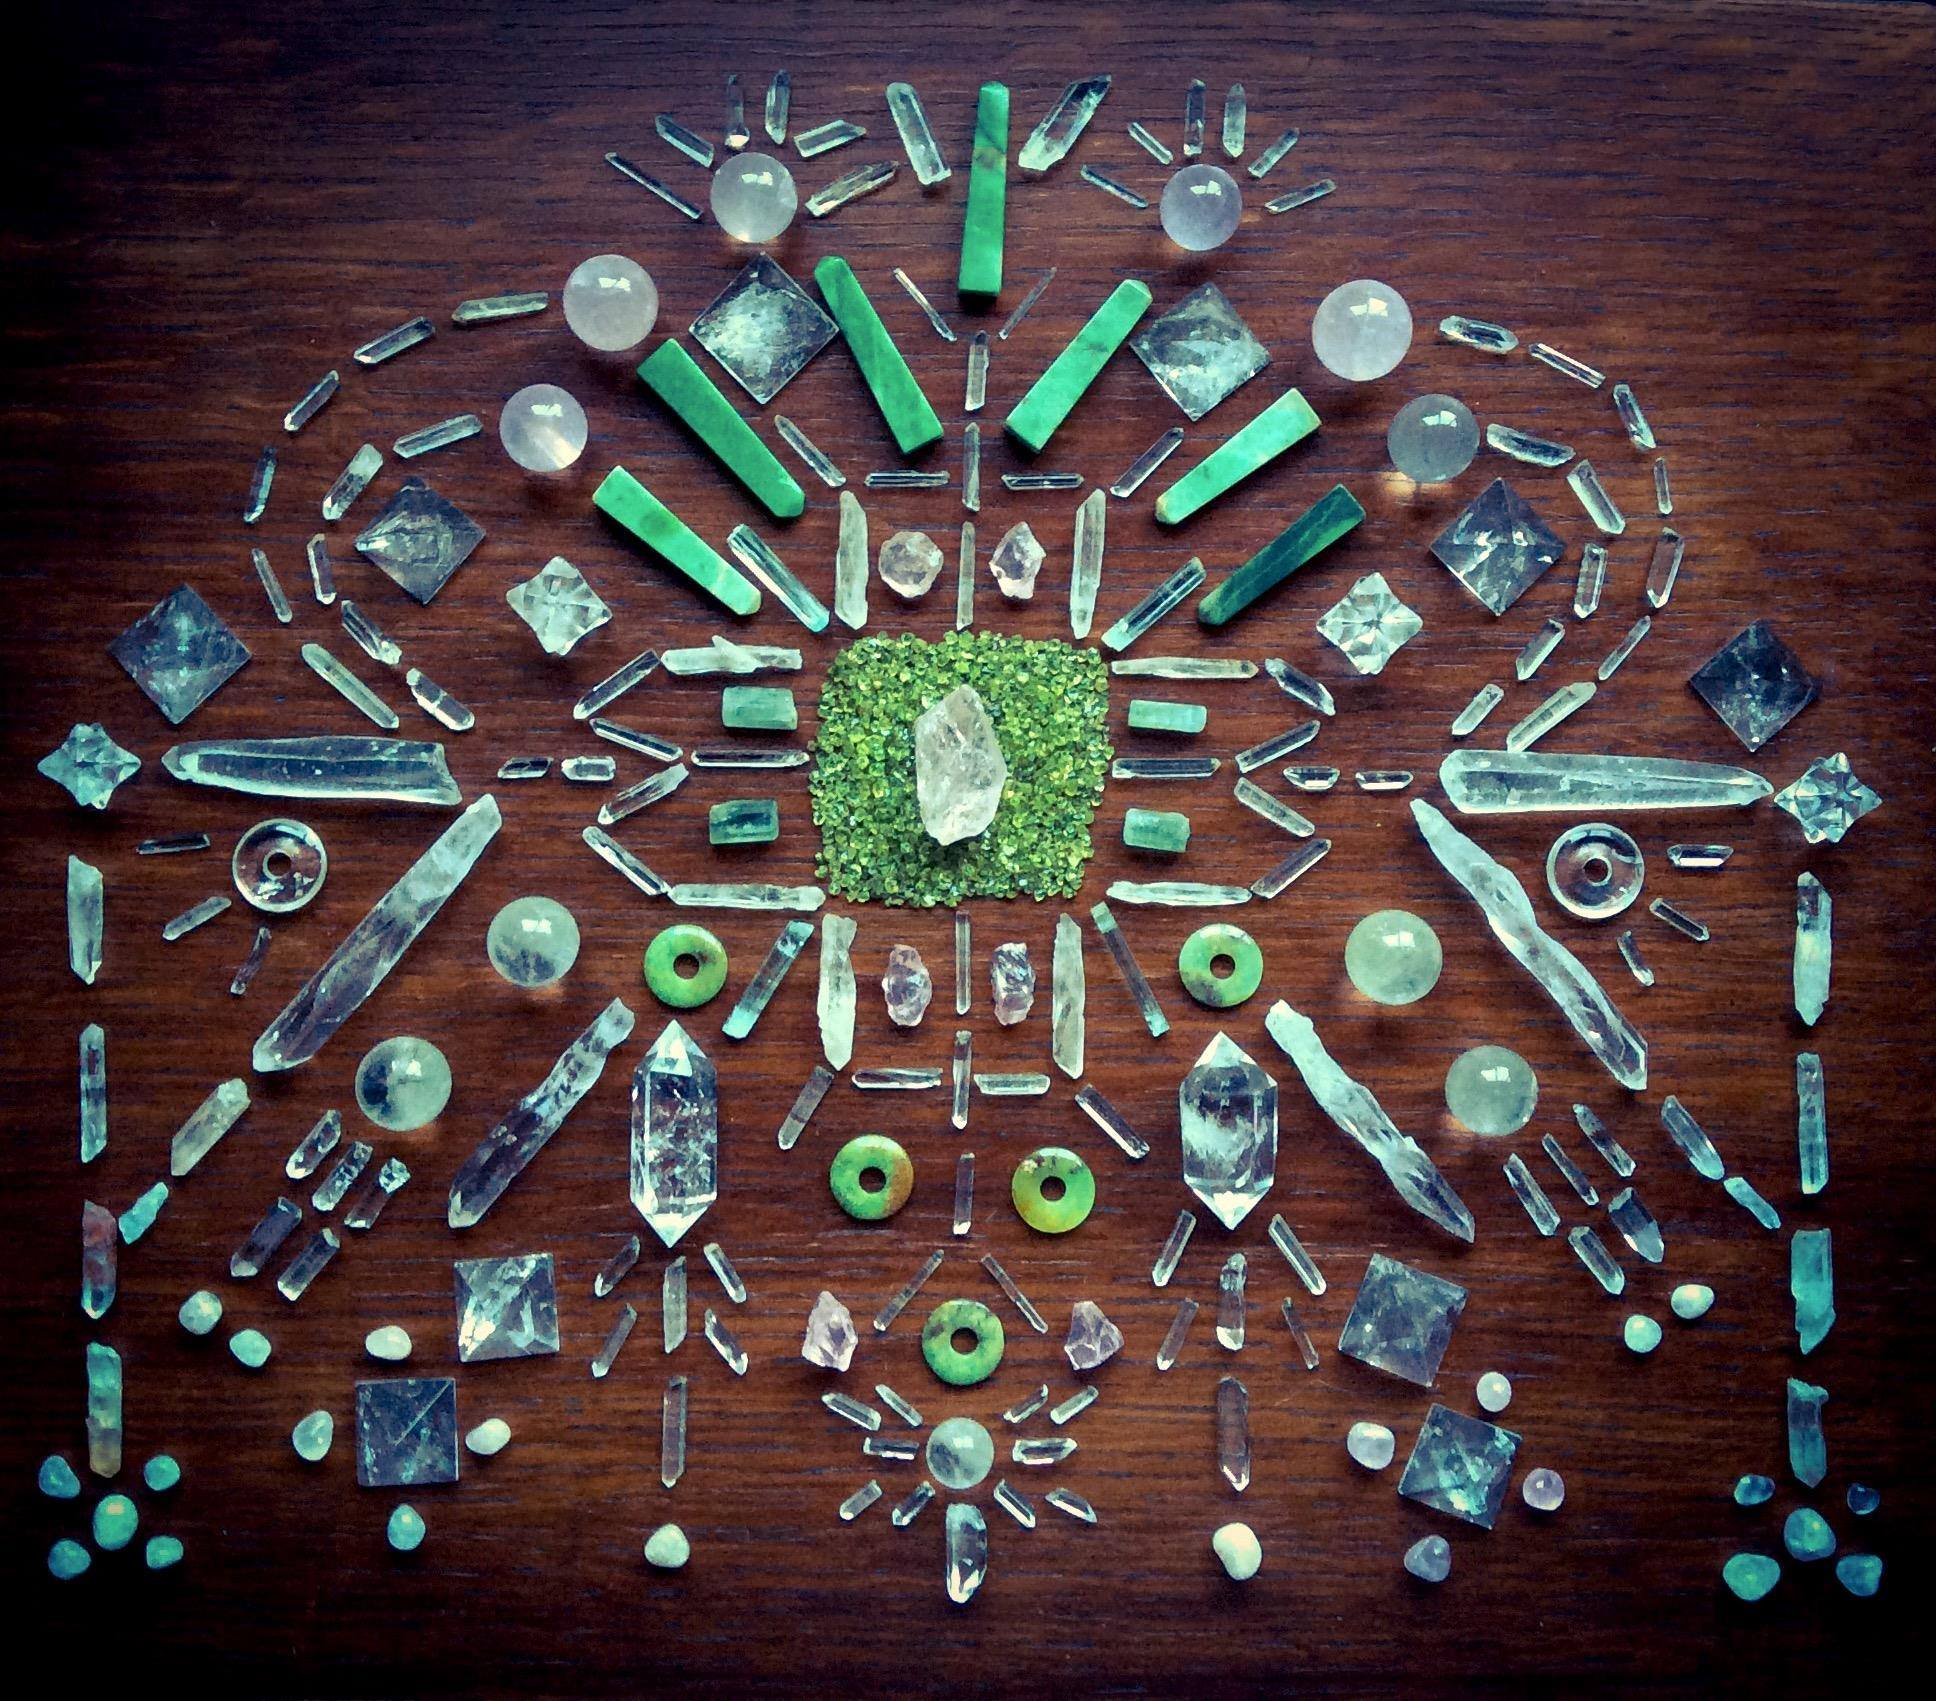 Morganite, Peridot, Chrysoprase, Quartz, Lemurian Laser Quartz, Rose Quartz, Aquamarine and Laser Quartz